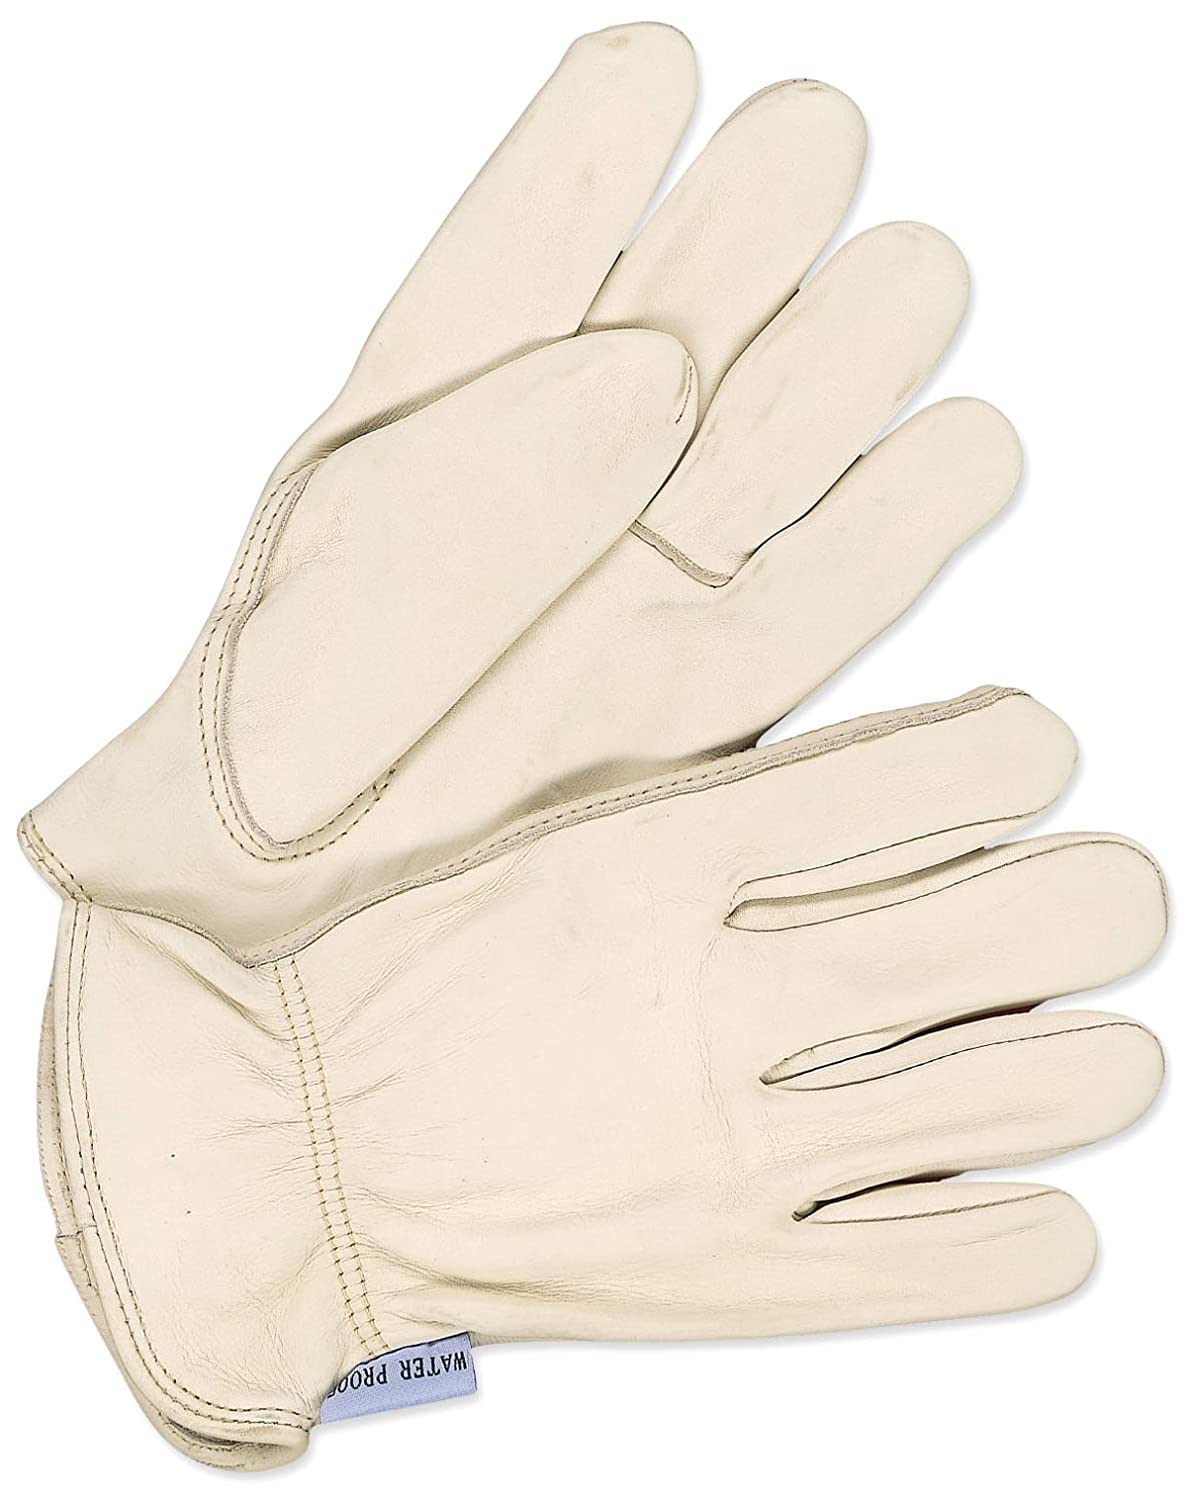 X-Large BDG 20-1-288-XL Dry As A Bone Leather Driver Glove